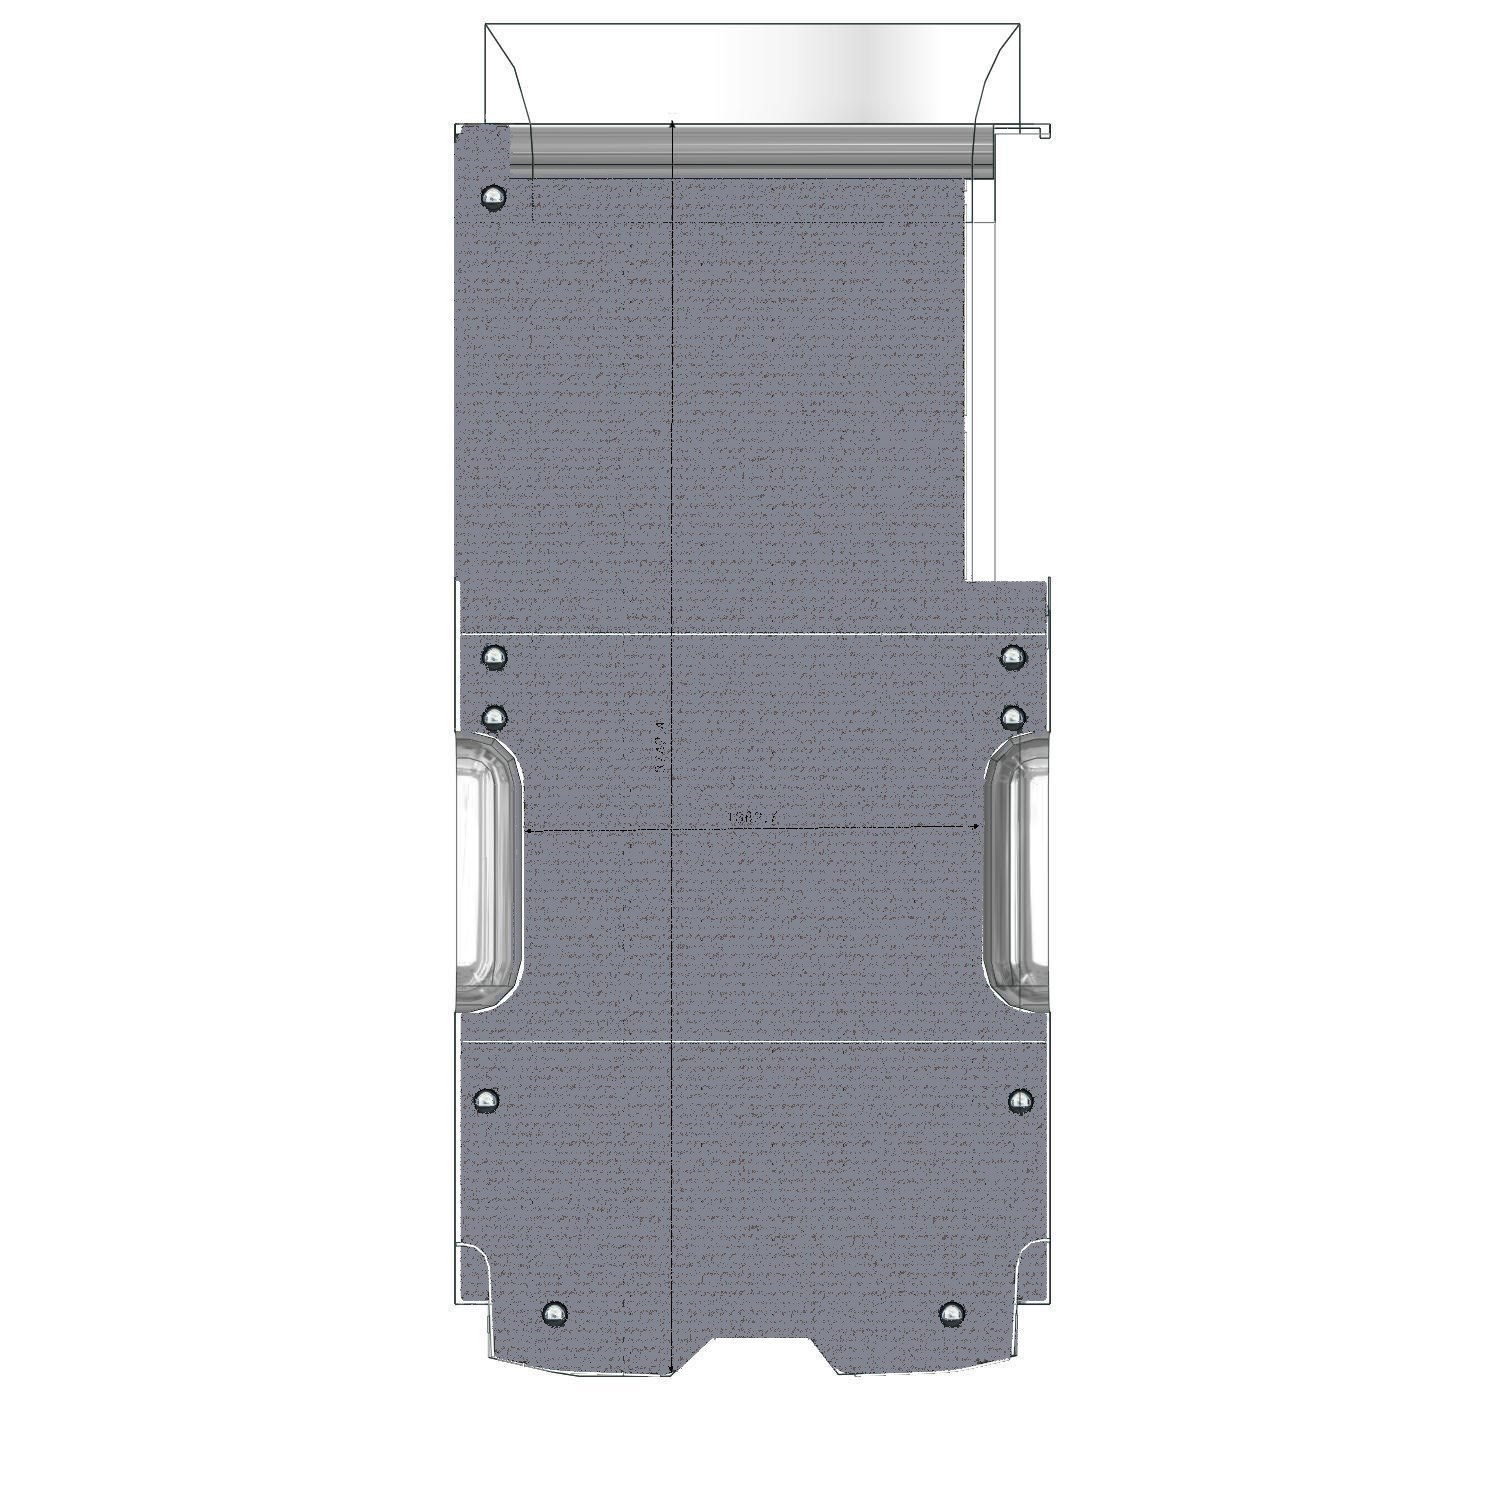 Plancher protection Opel Movano L3 propulsion